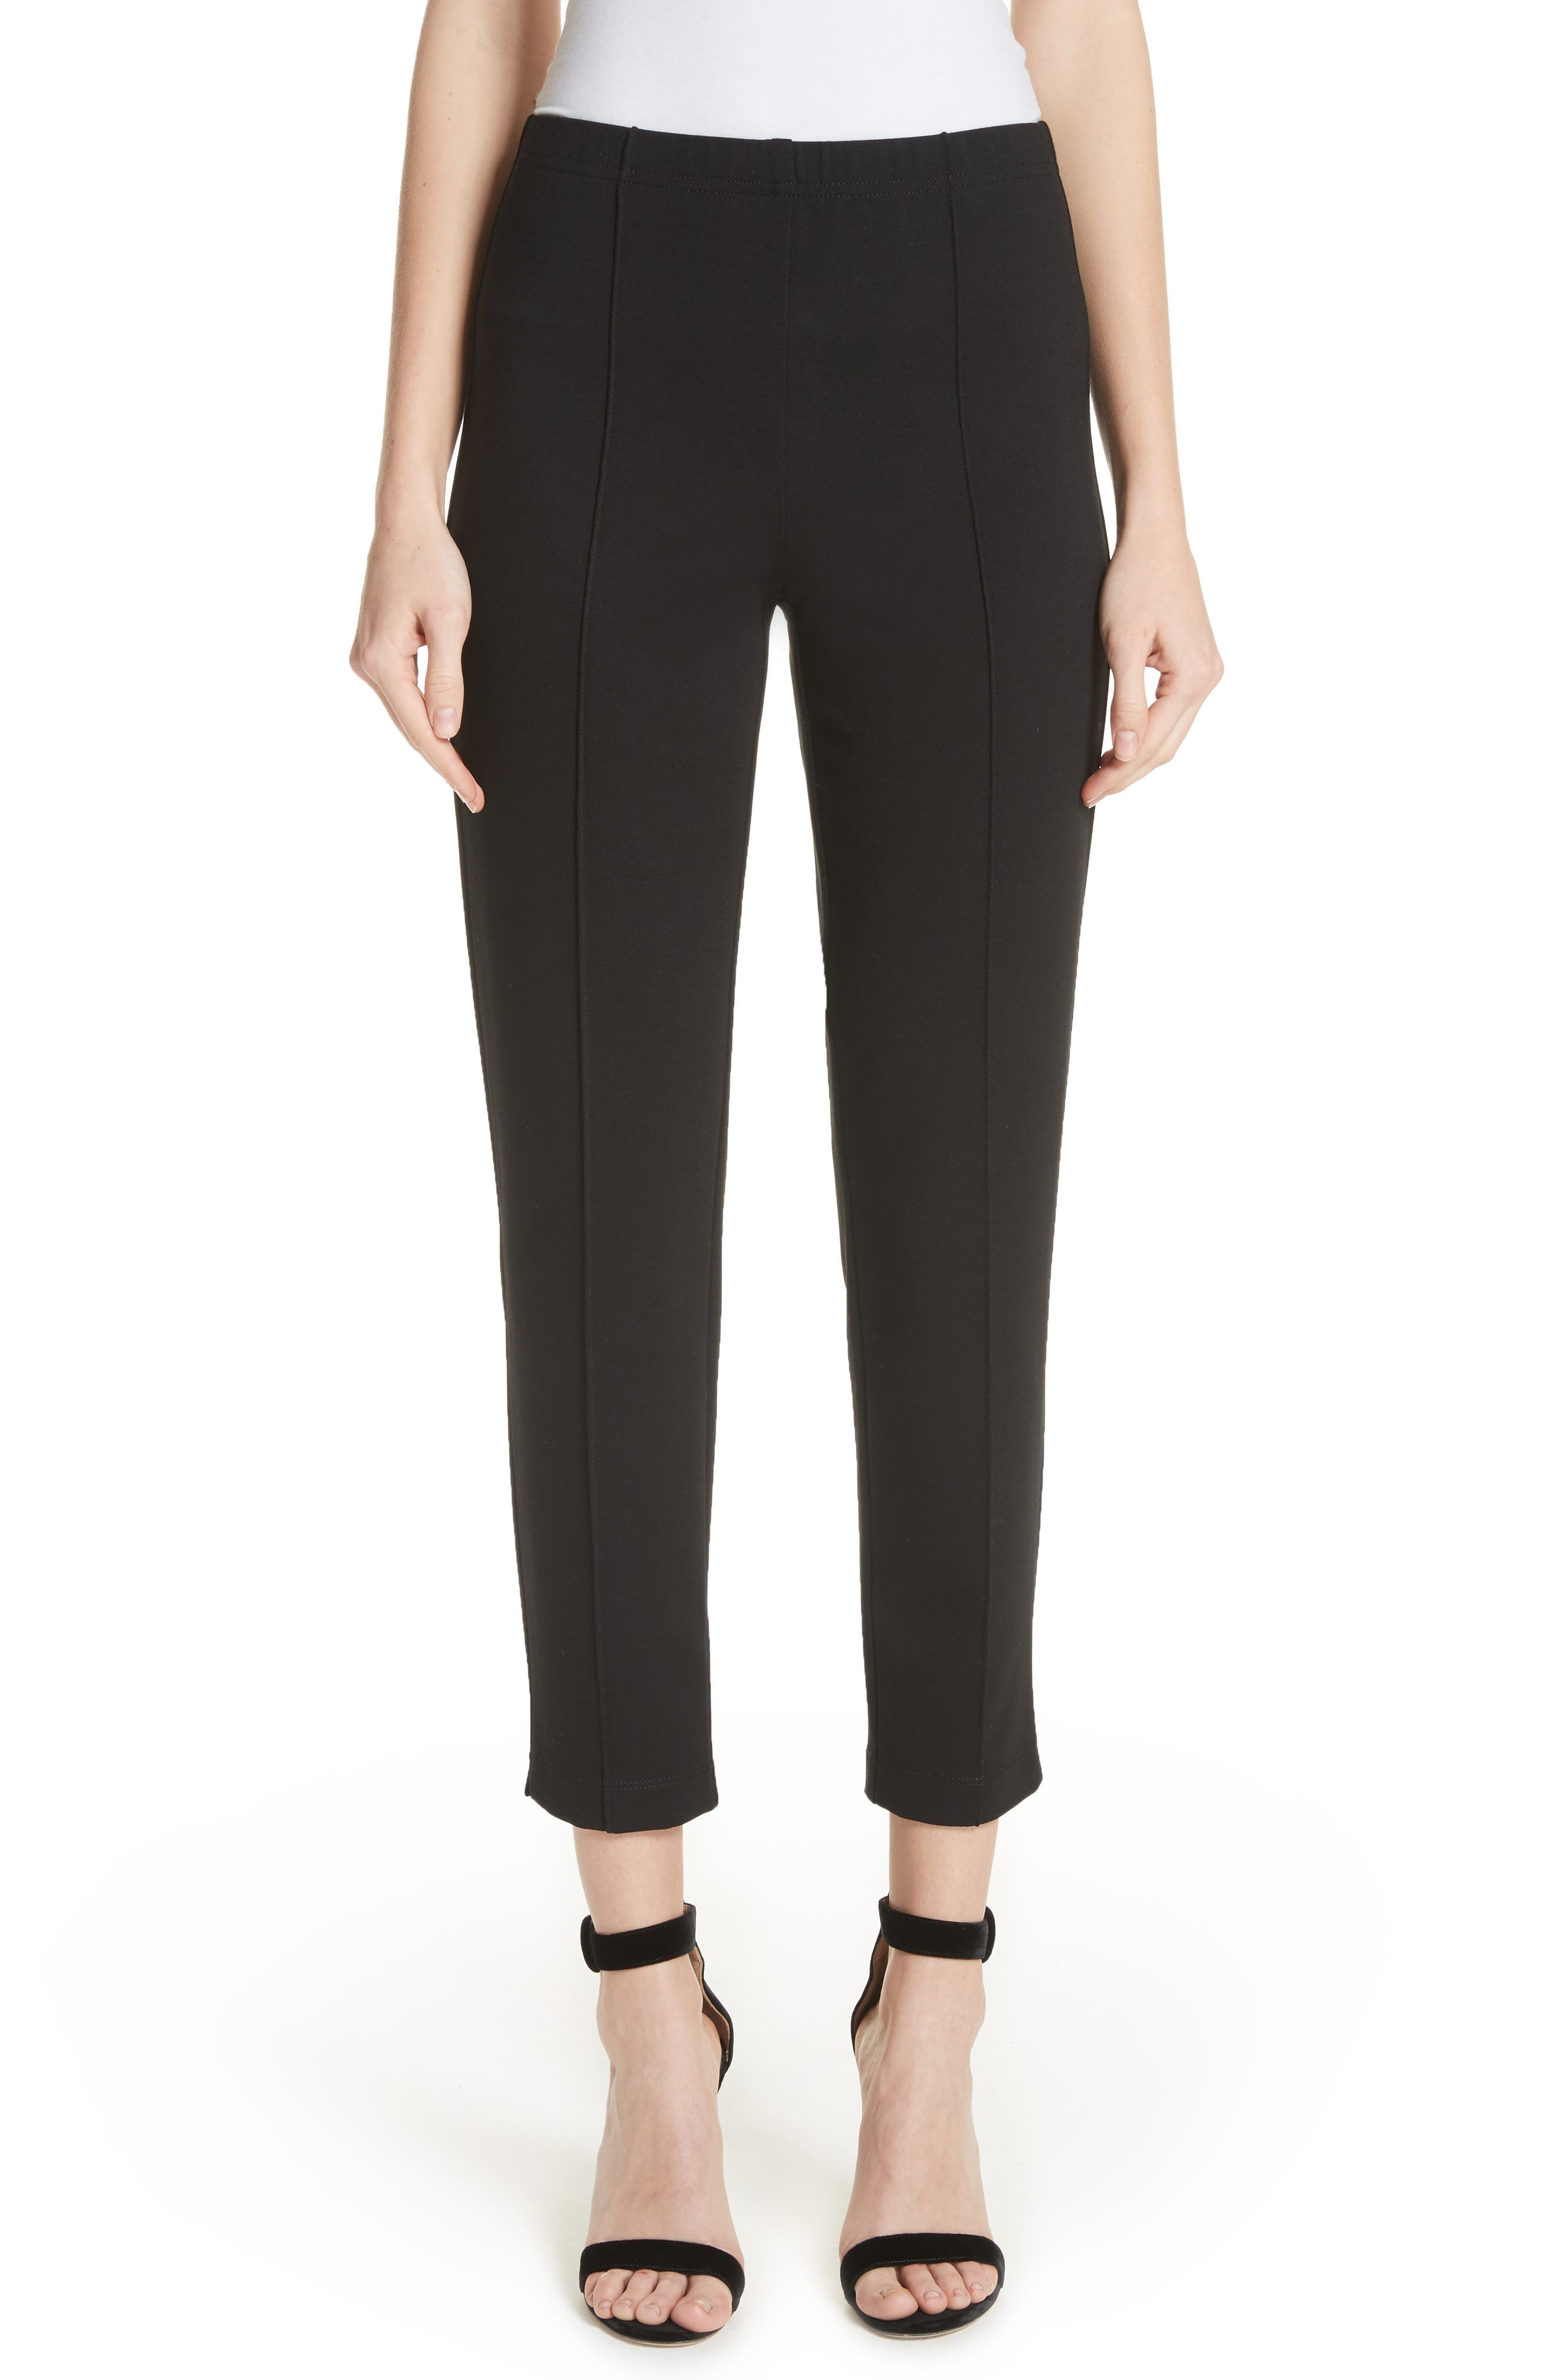 Alternate Image 1 Selected - St. John Collection Ponte Knit Ankle Pants